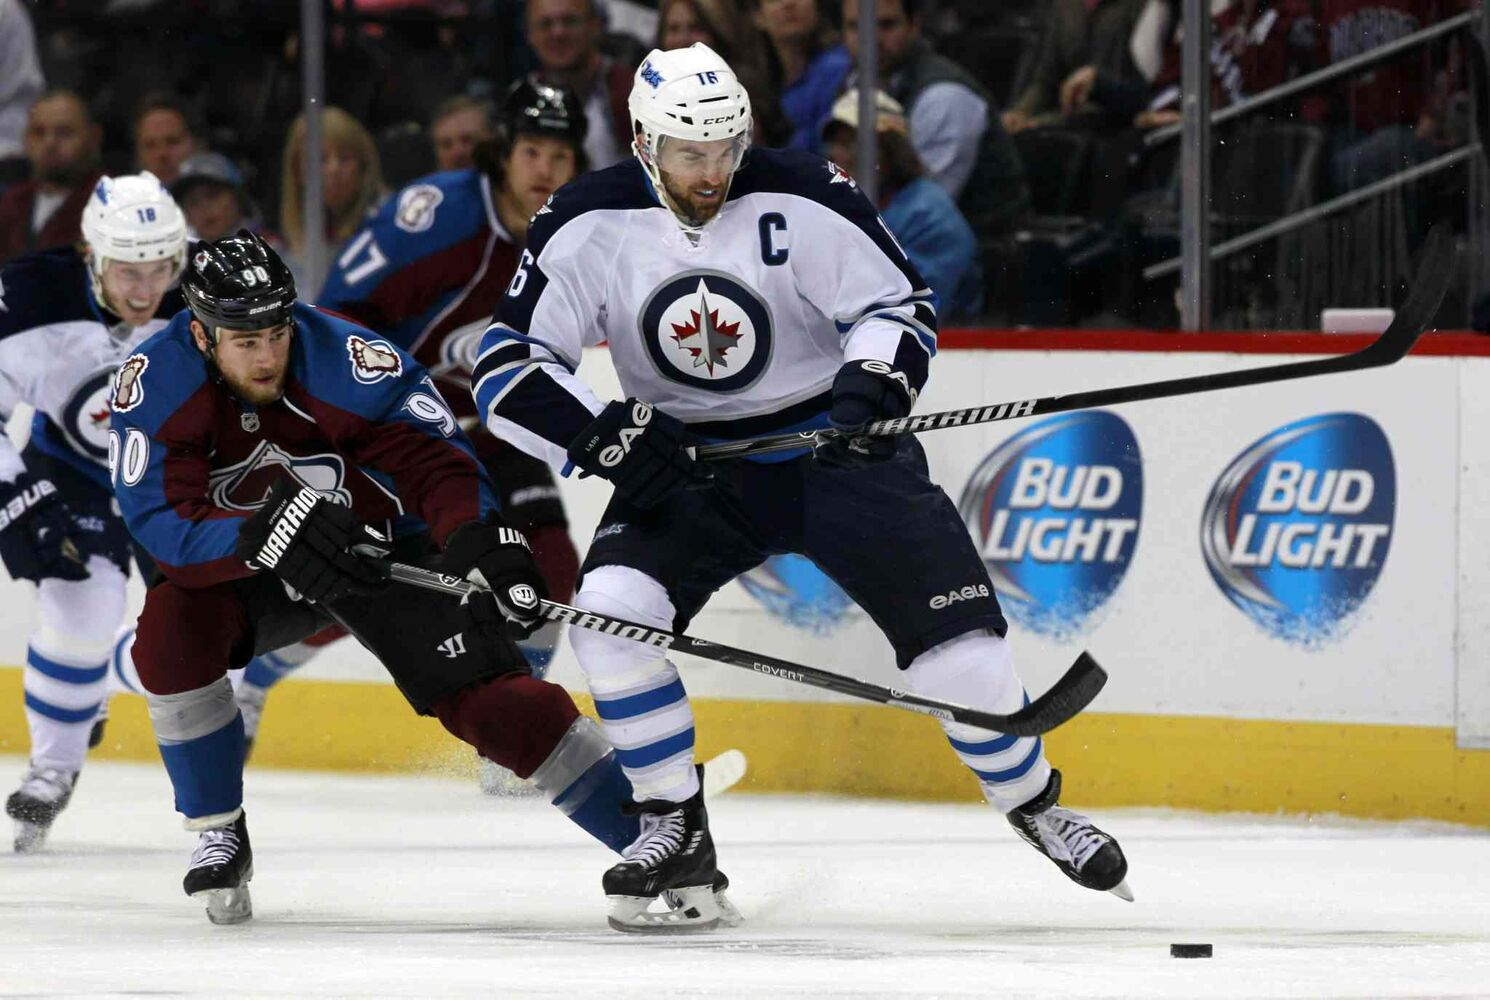 Andrew Ladd (right) is hooked by Colorado Avalanche centre Ryan O'Reilly while reaching for the puck in the first period. (David Zalubowski / The Associated Press)